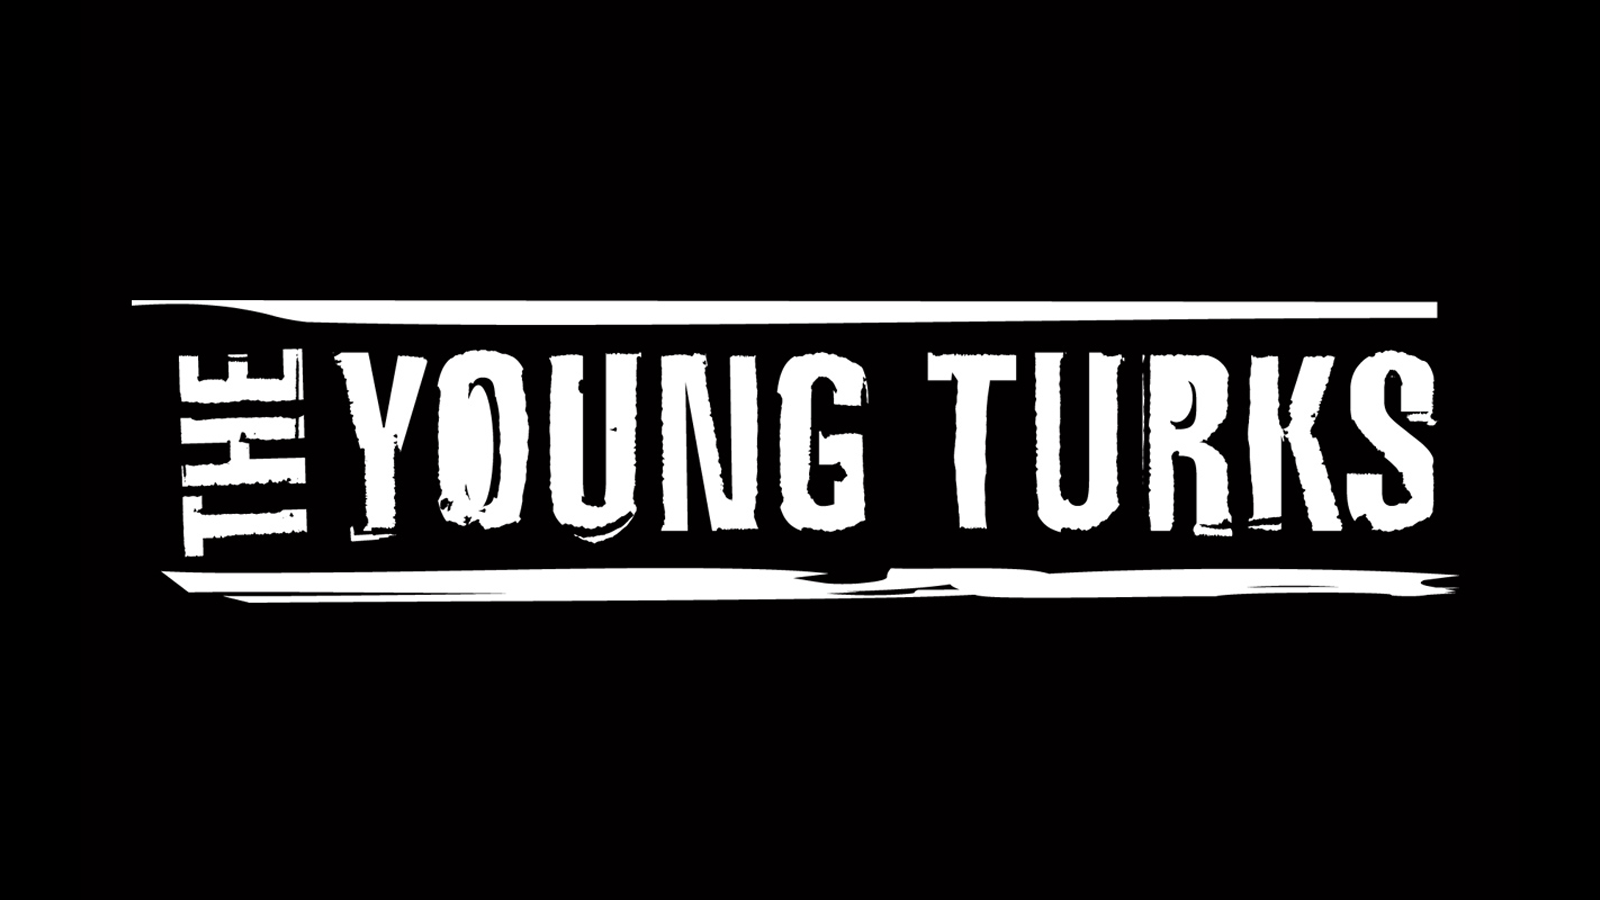 tyt. logo, the young turks, youtube, news, media